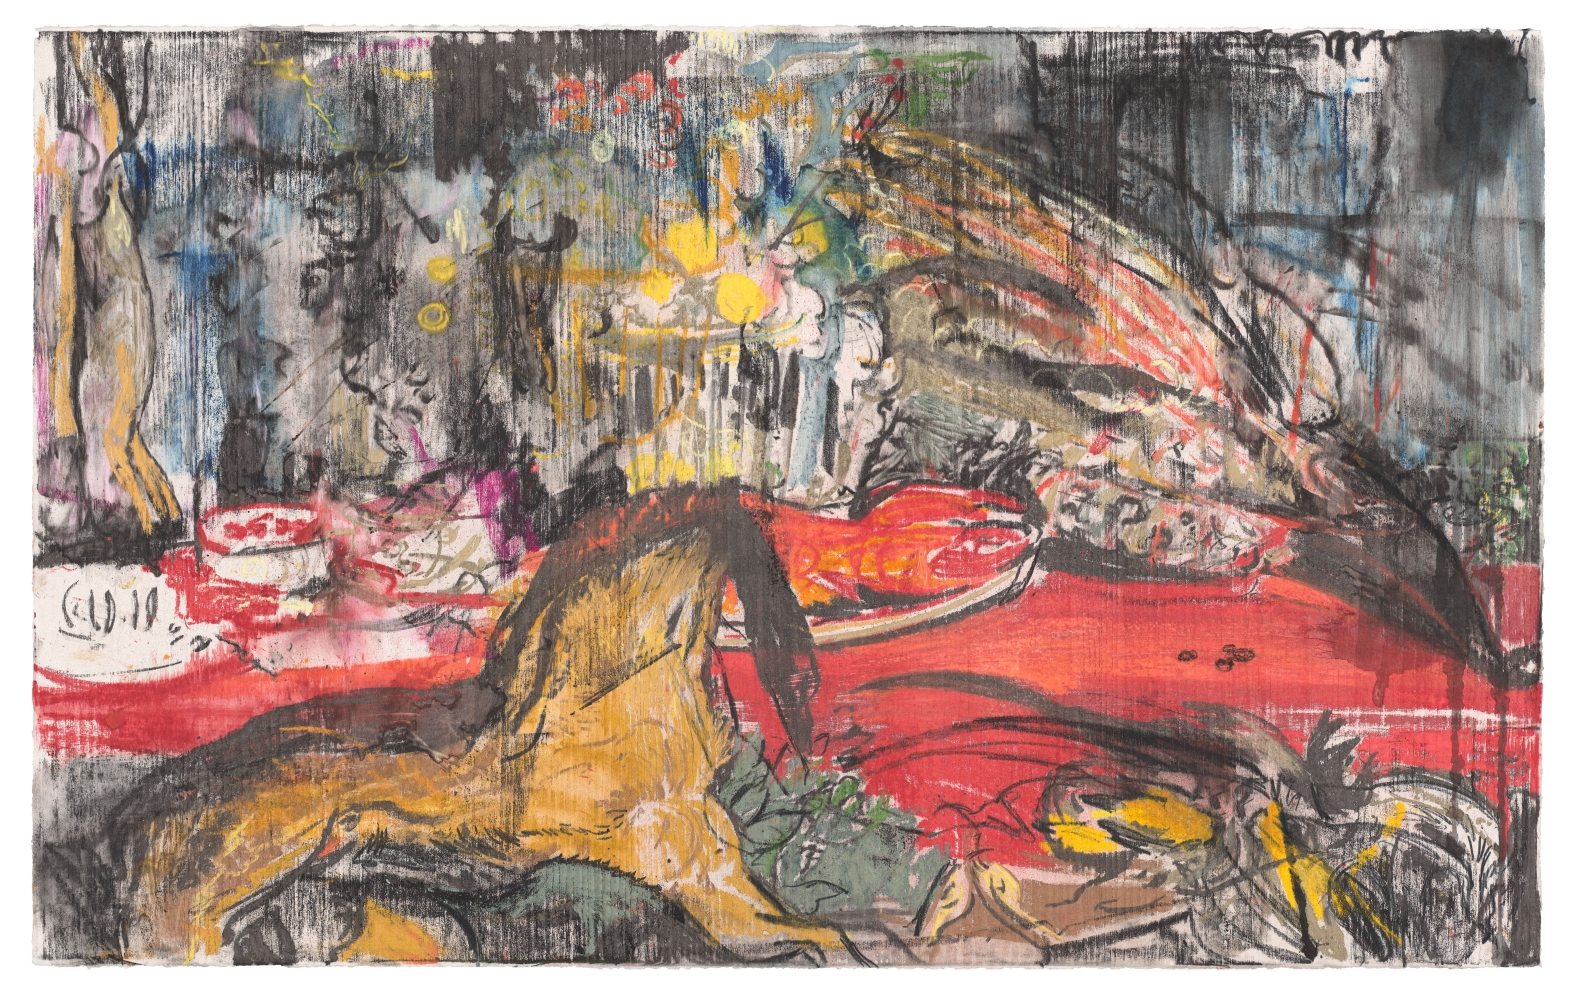 Cecily Brown, Untitled (Nature Morte after Frans Snyders), 2020